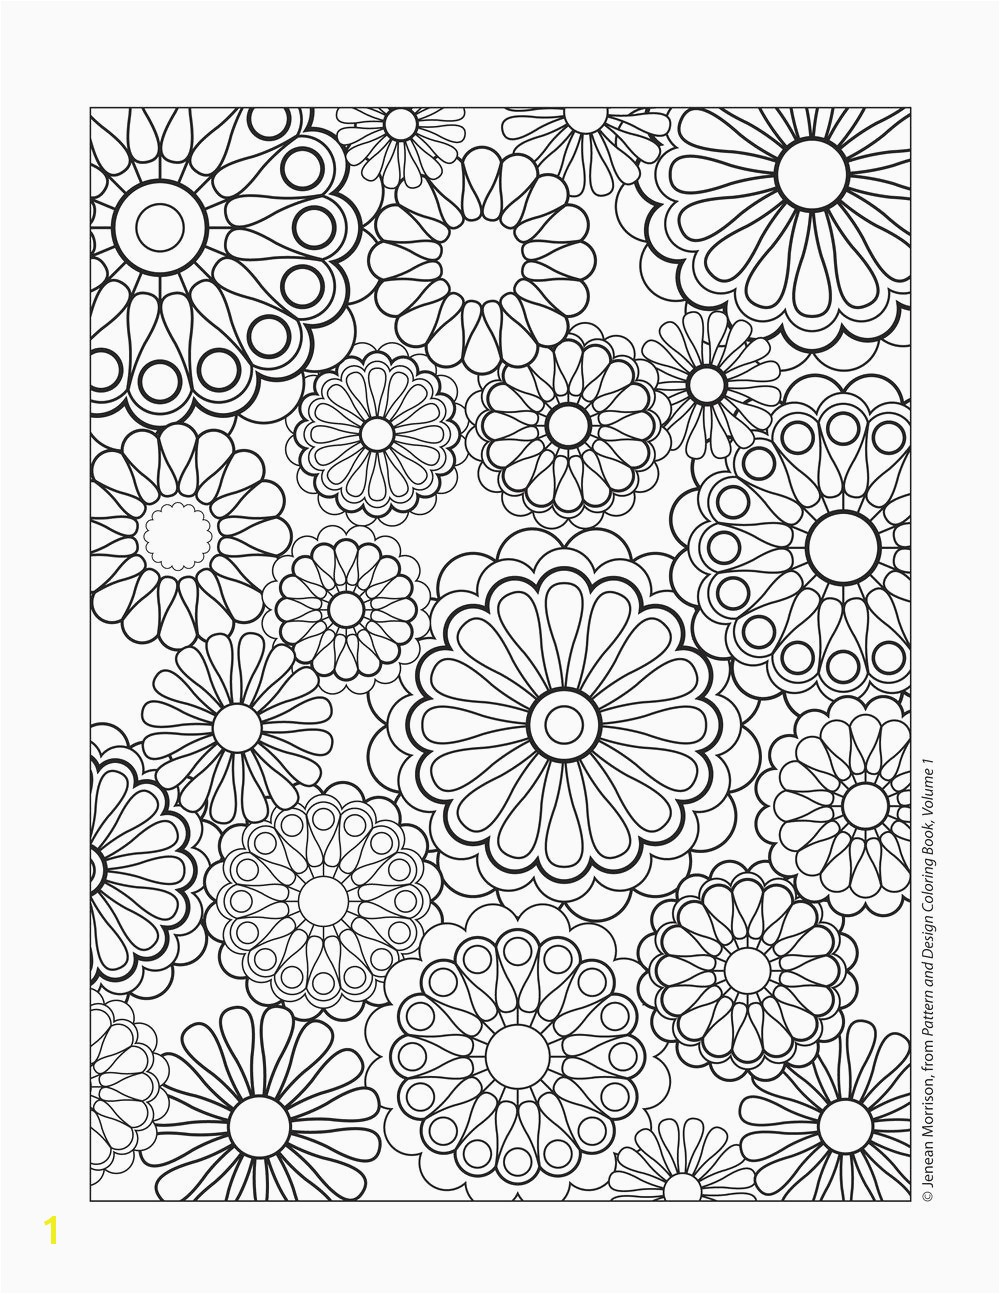 Geometric Shape Coloring Pages Geometric Shapes Coloring Pages Unique Shapes Coloring Pages S